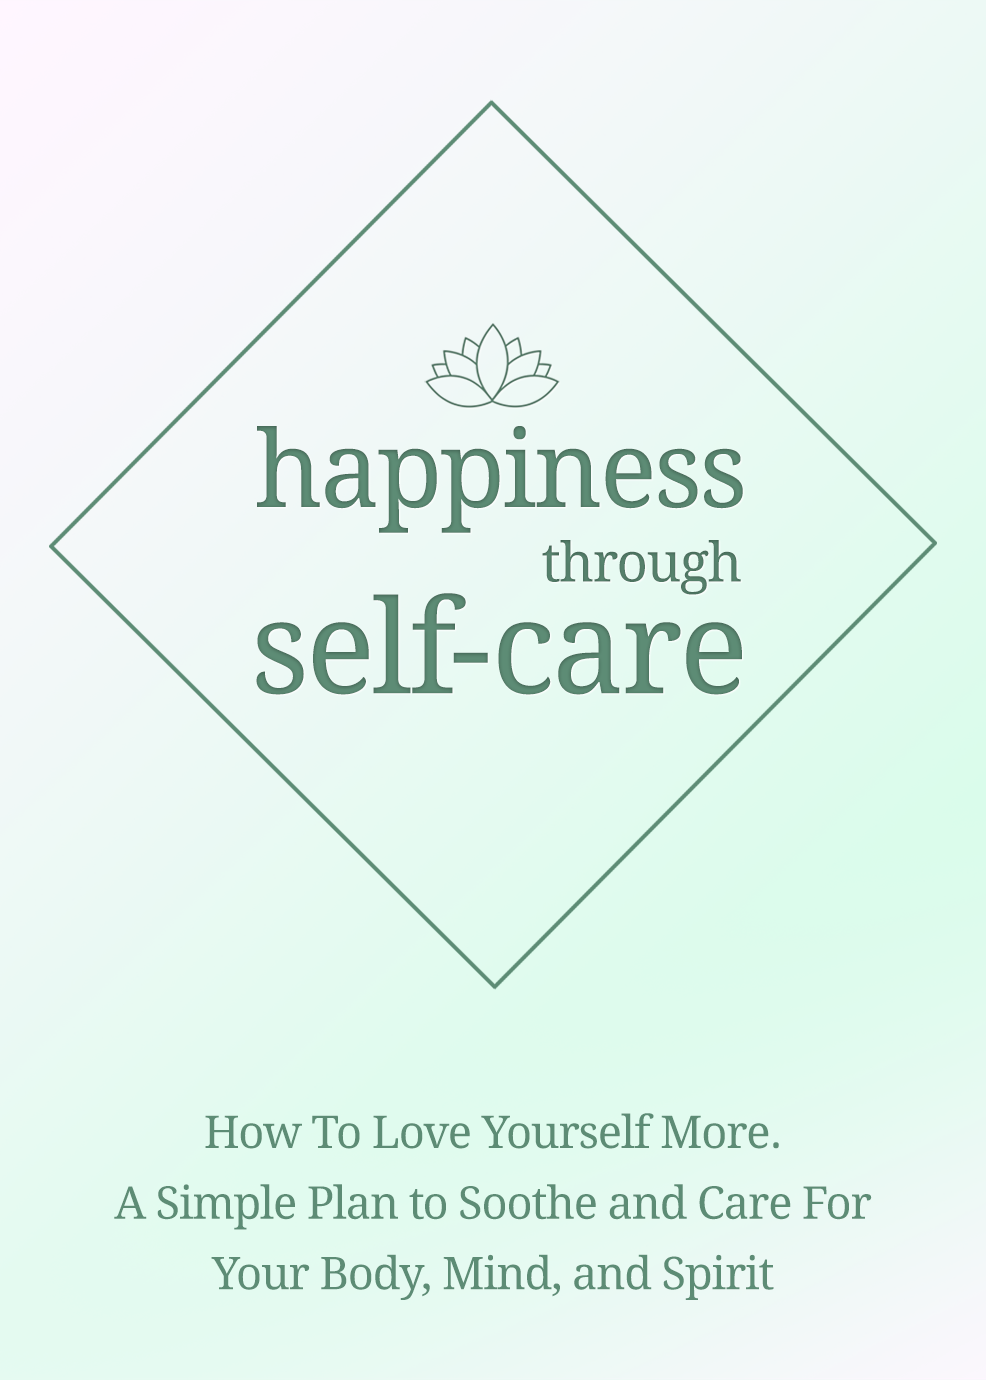 Happiness Through Self-Care (How To Love Yourself More. A Simple Plan To Soothe And Care For Your Body, Mind And Spirit) Ebook's Ebook Image